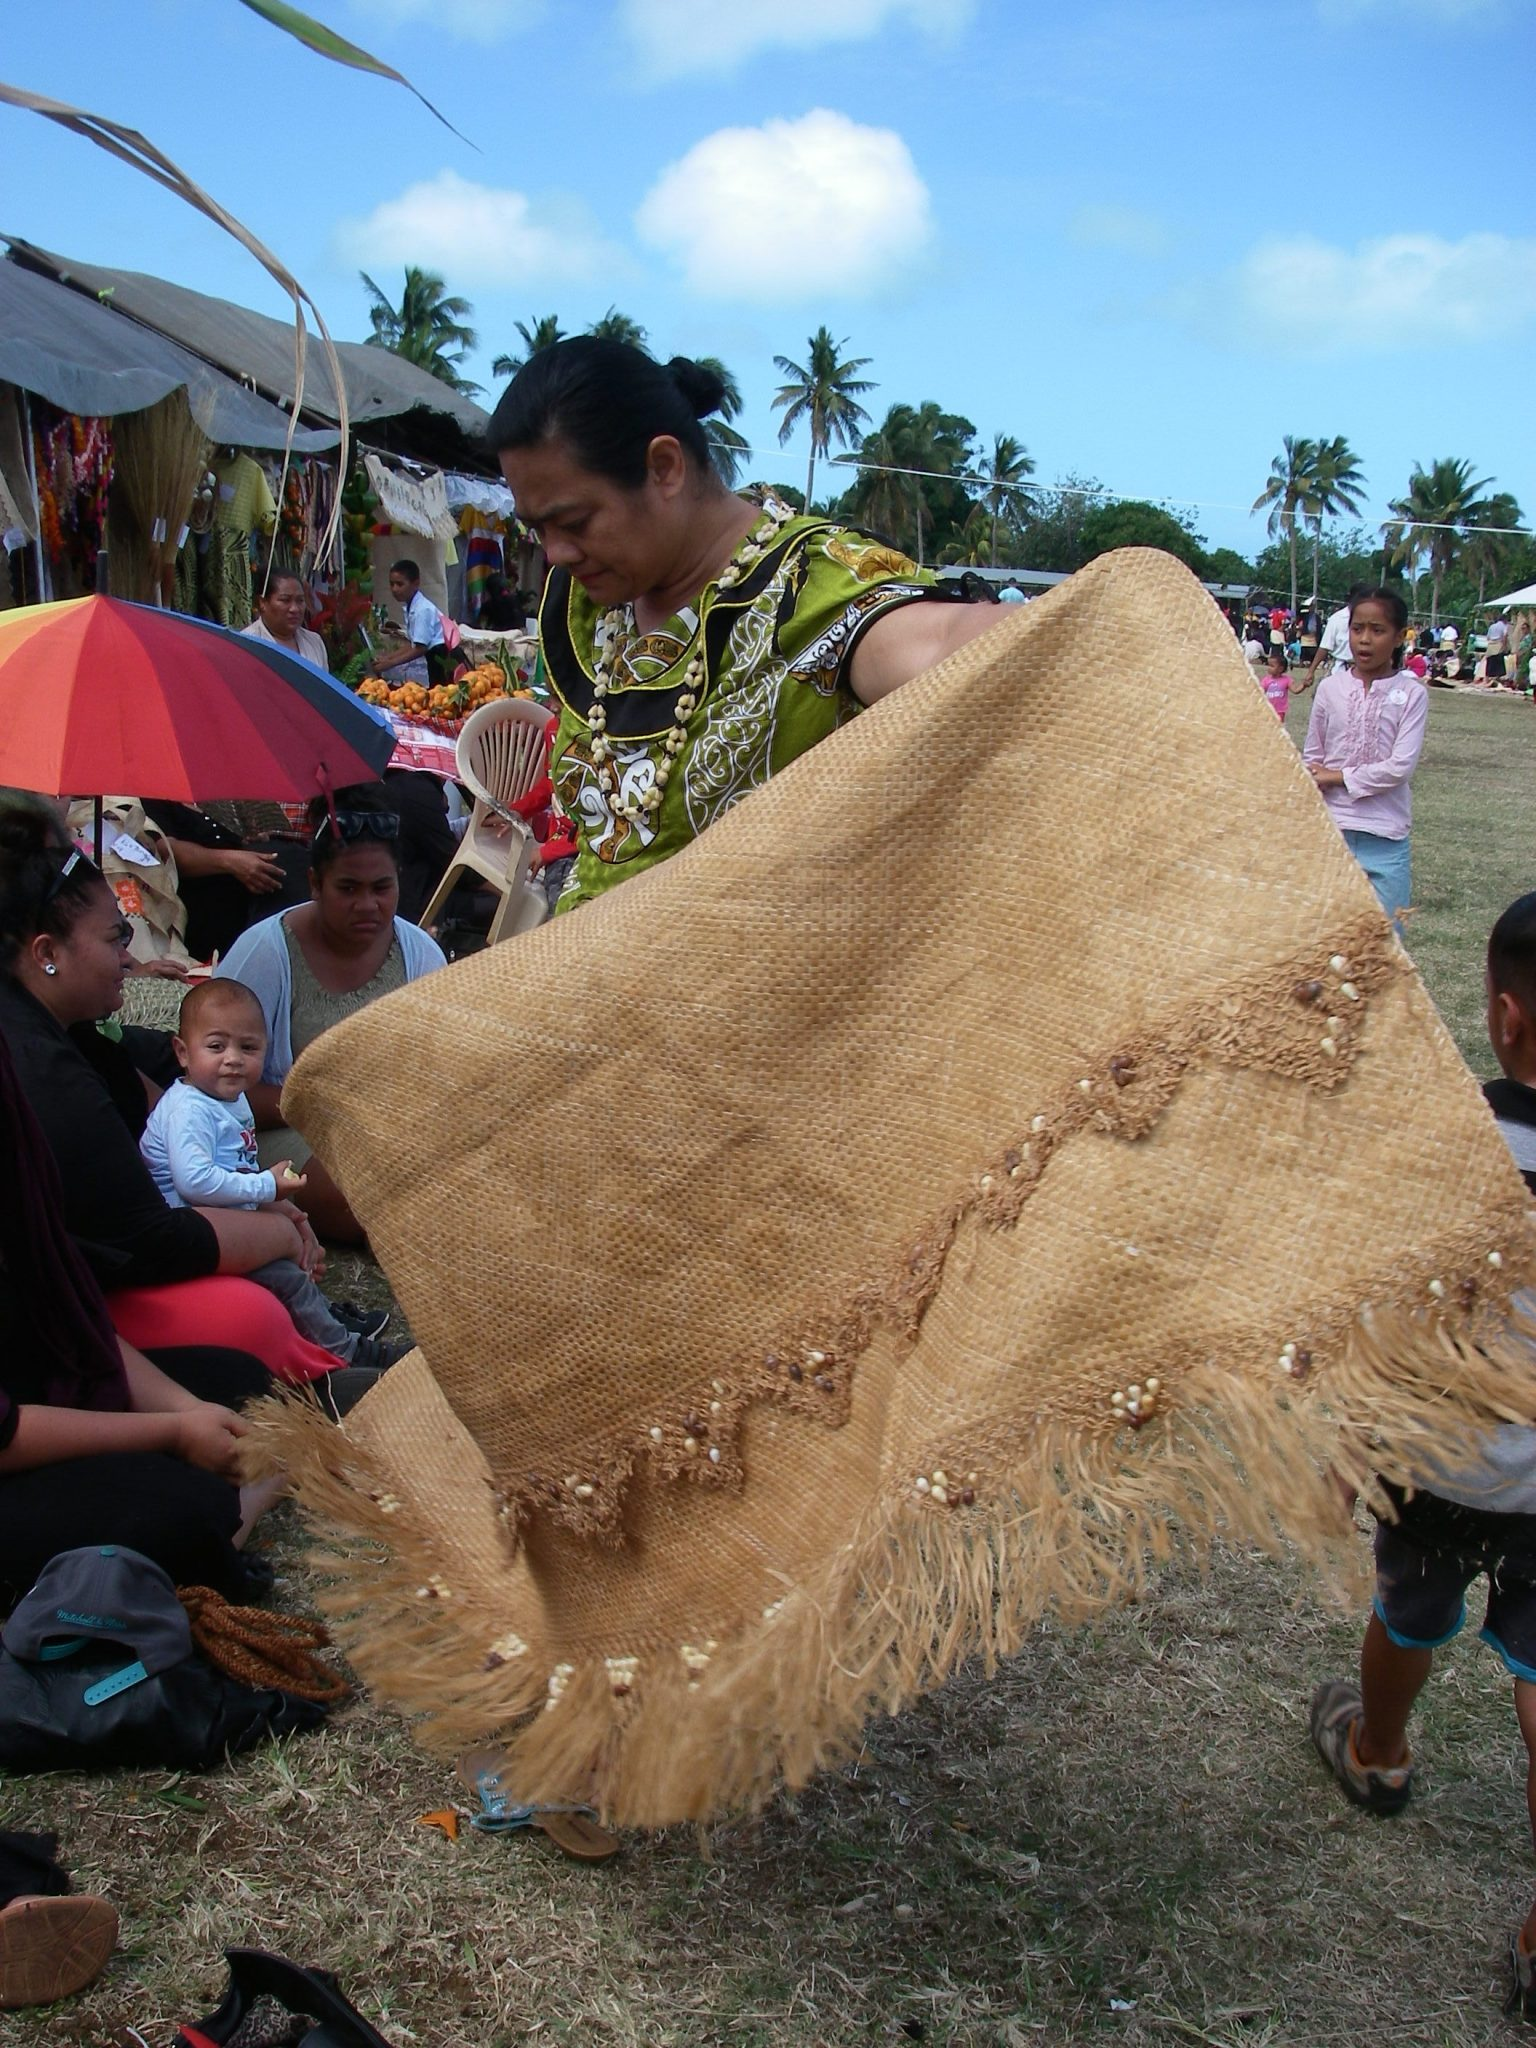 103. In preparation to show loyalty to the crown of Tonga when the King and Queen walked by, this Tongan woman gets her finely woven ta'ovala ready to wrap around her waist